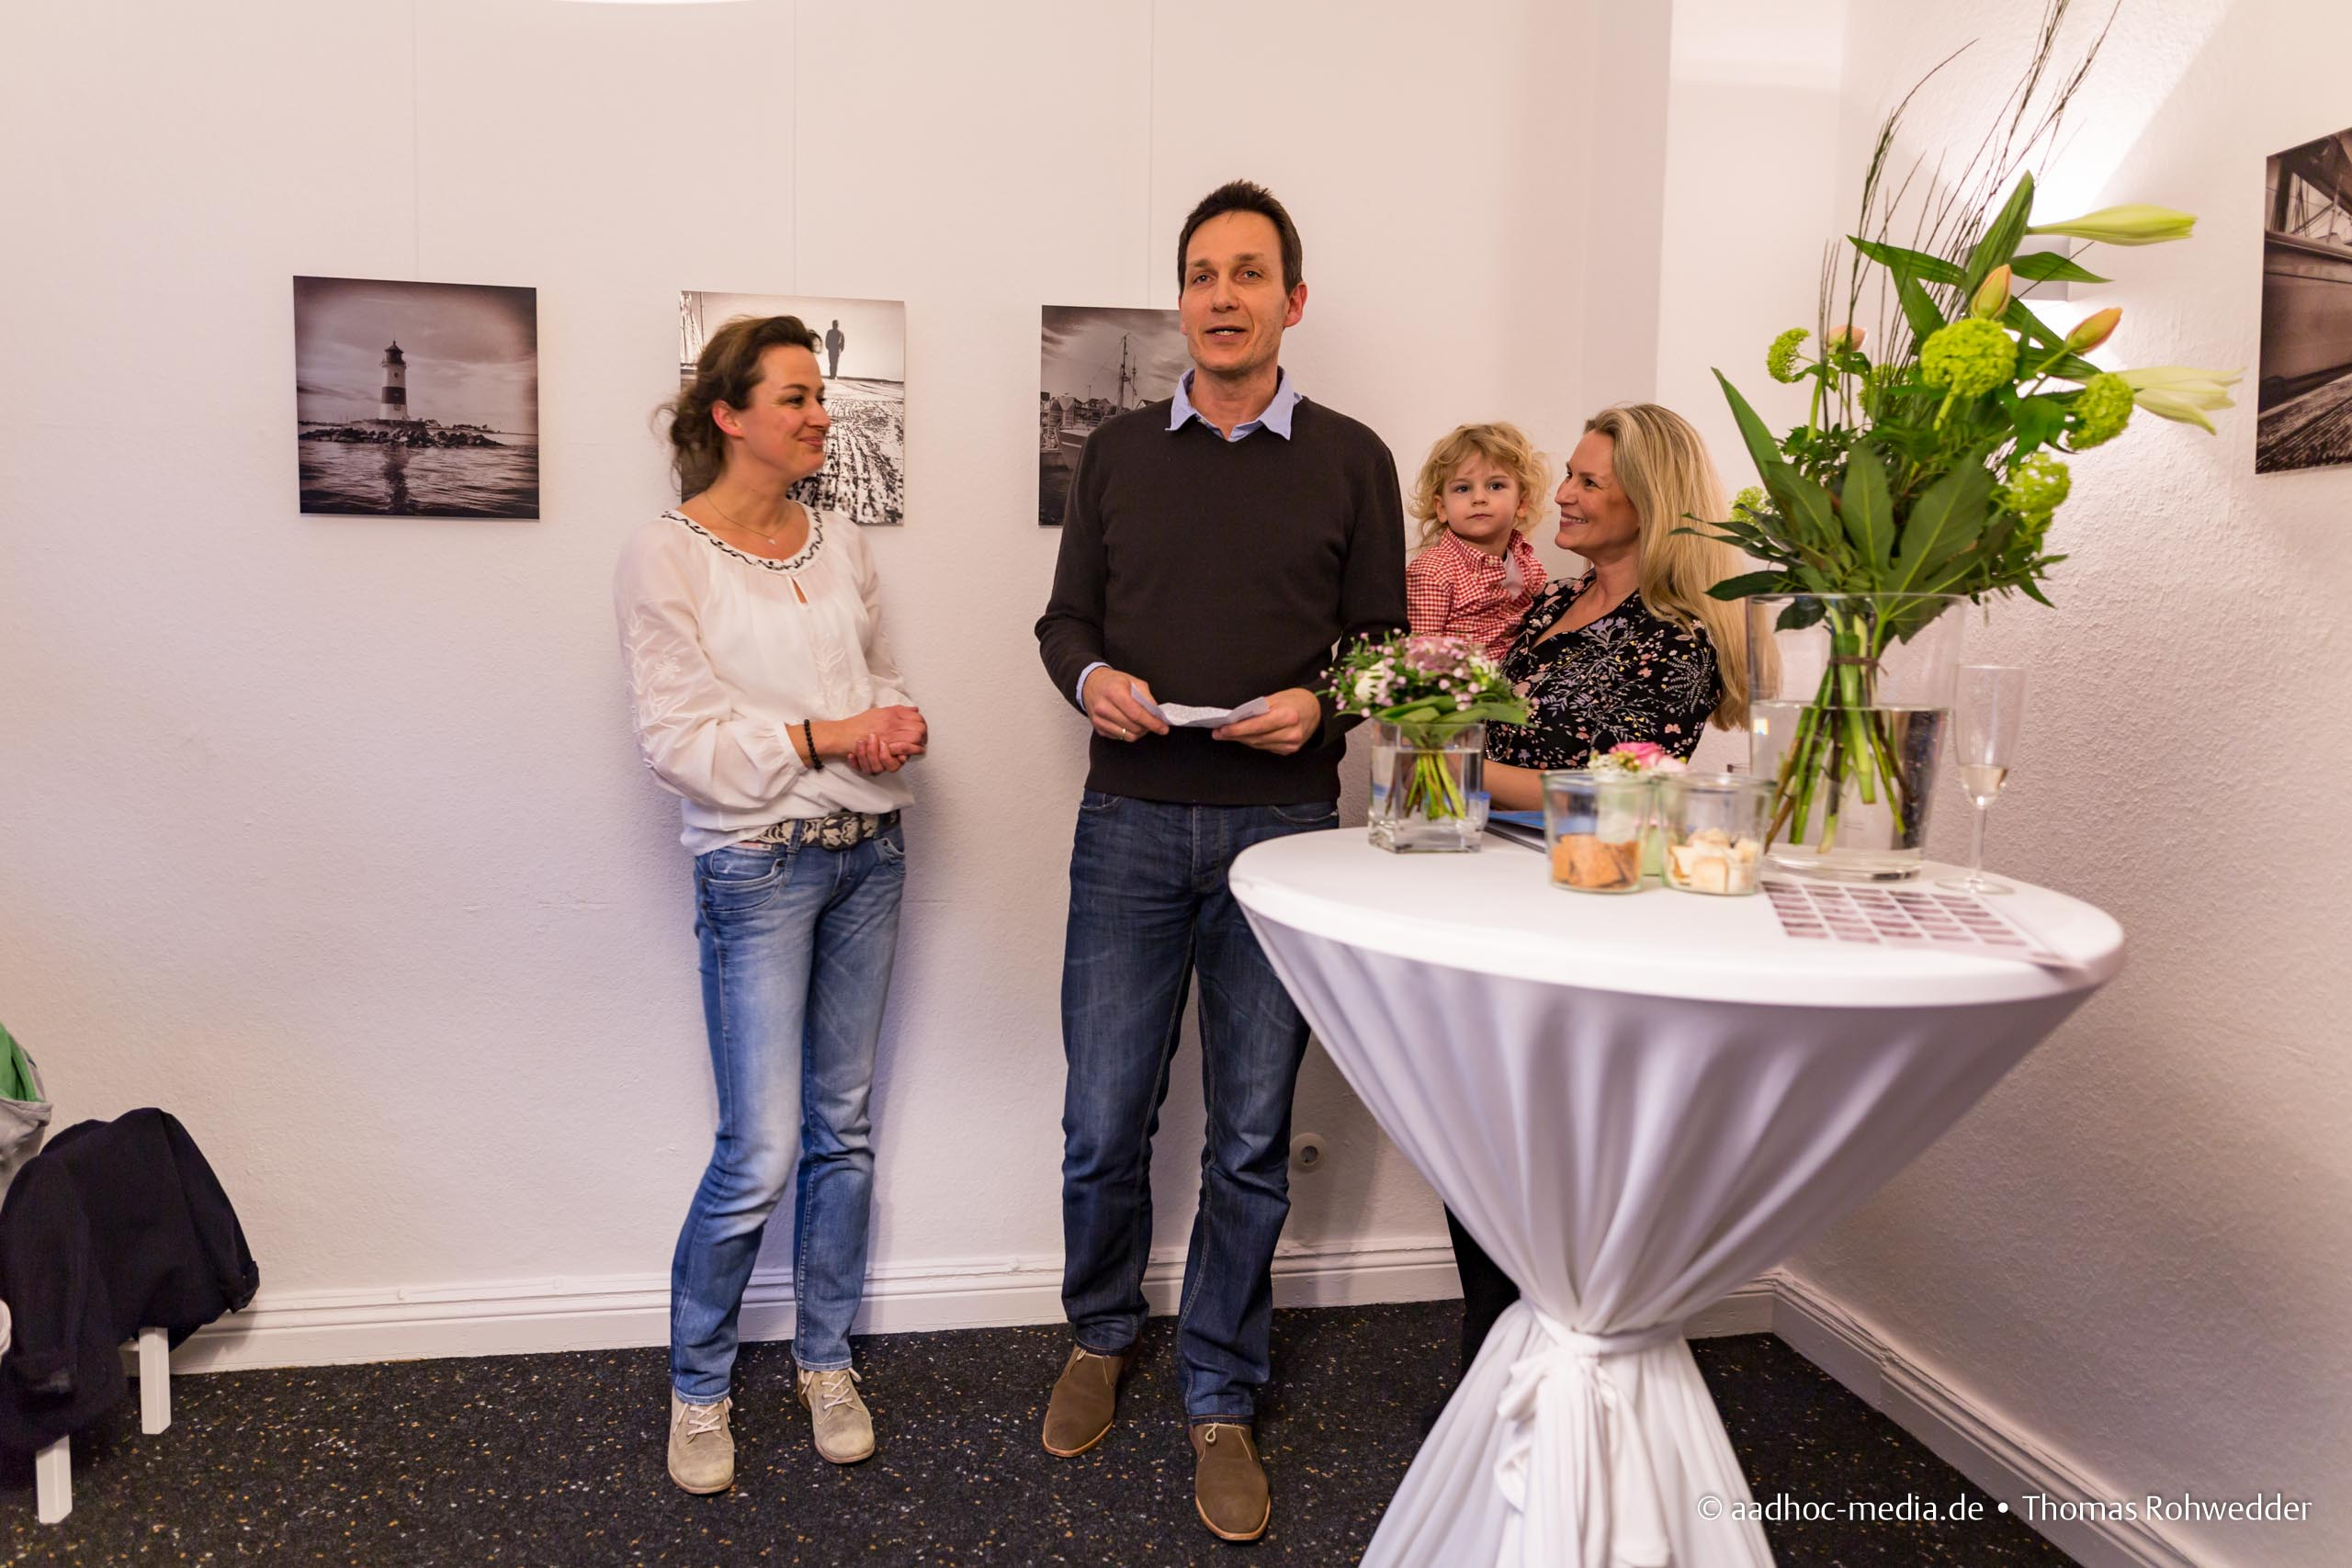 JuliBo_Vernissage_20160304Praxis_5D_107x_4857_HQ_copyrightThomasRohwedderGermany